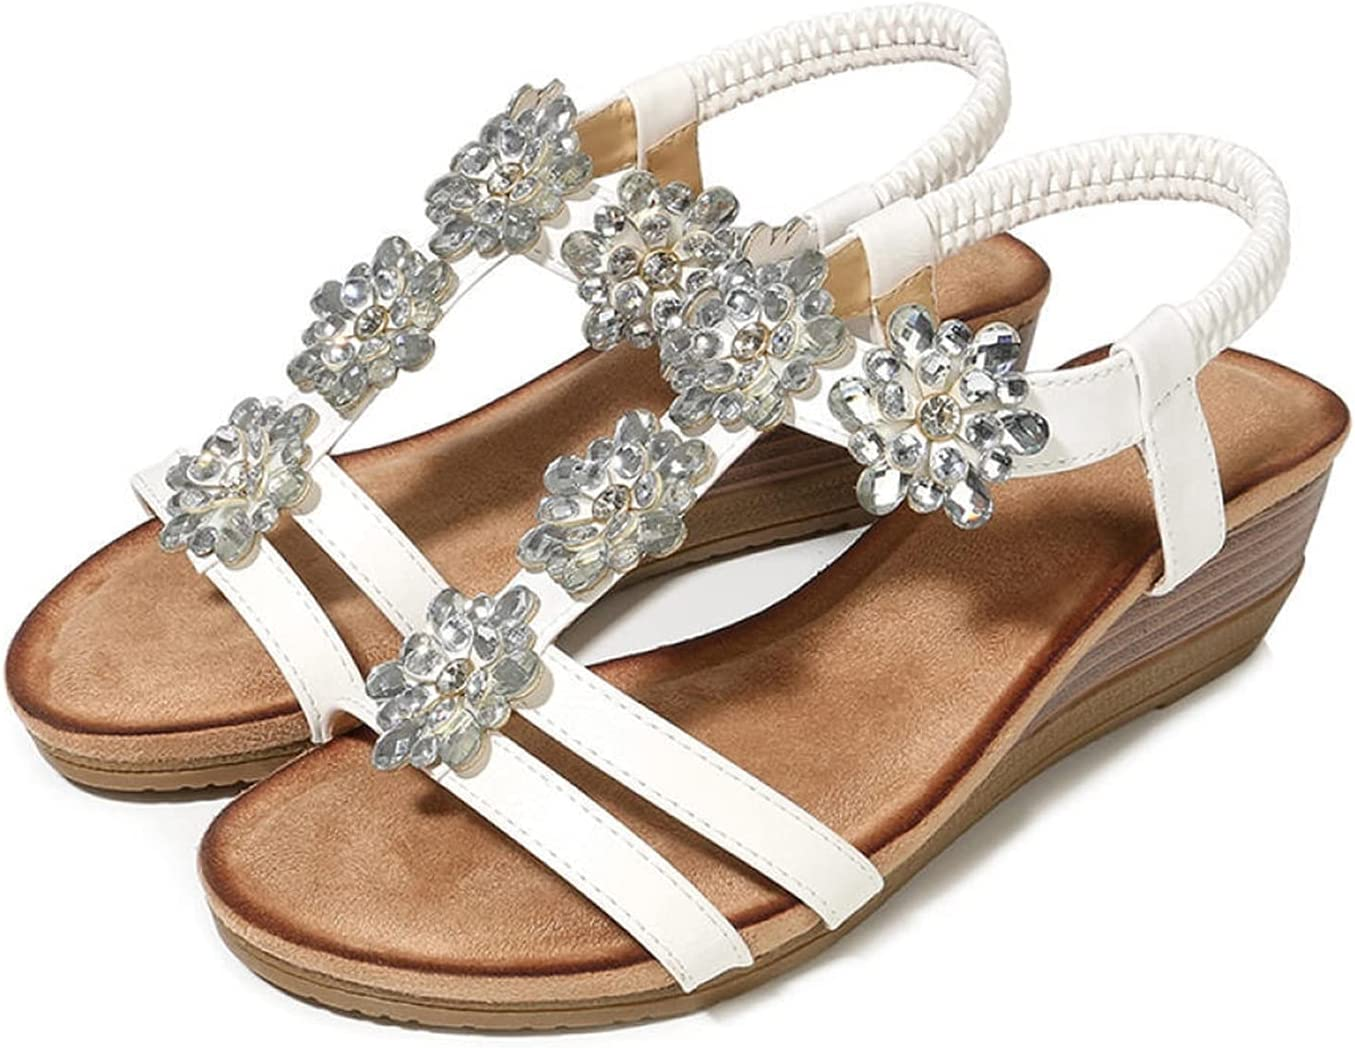 All stores Max 51% OFF are sold LyHomeAn Fashion Ladies Sandals Bohemian He Wedge